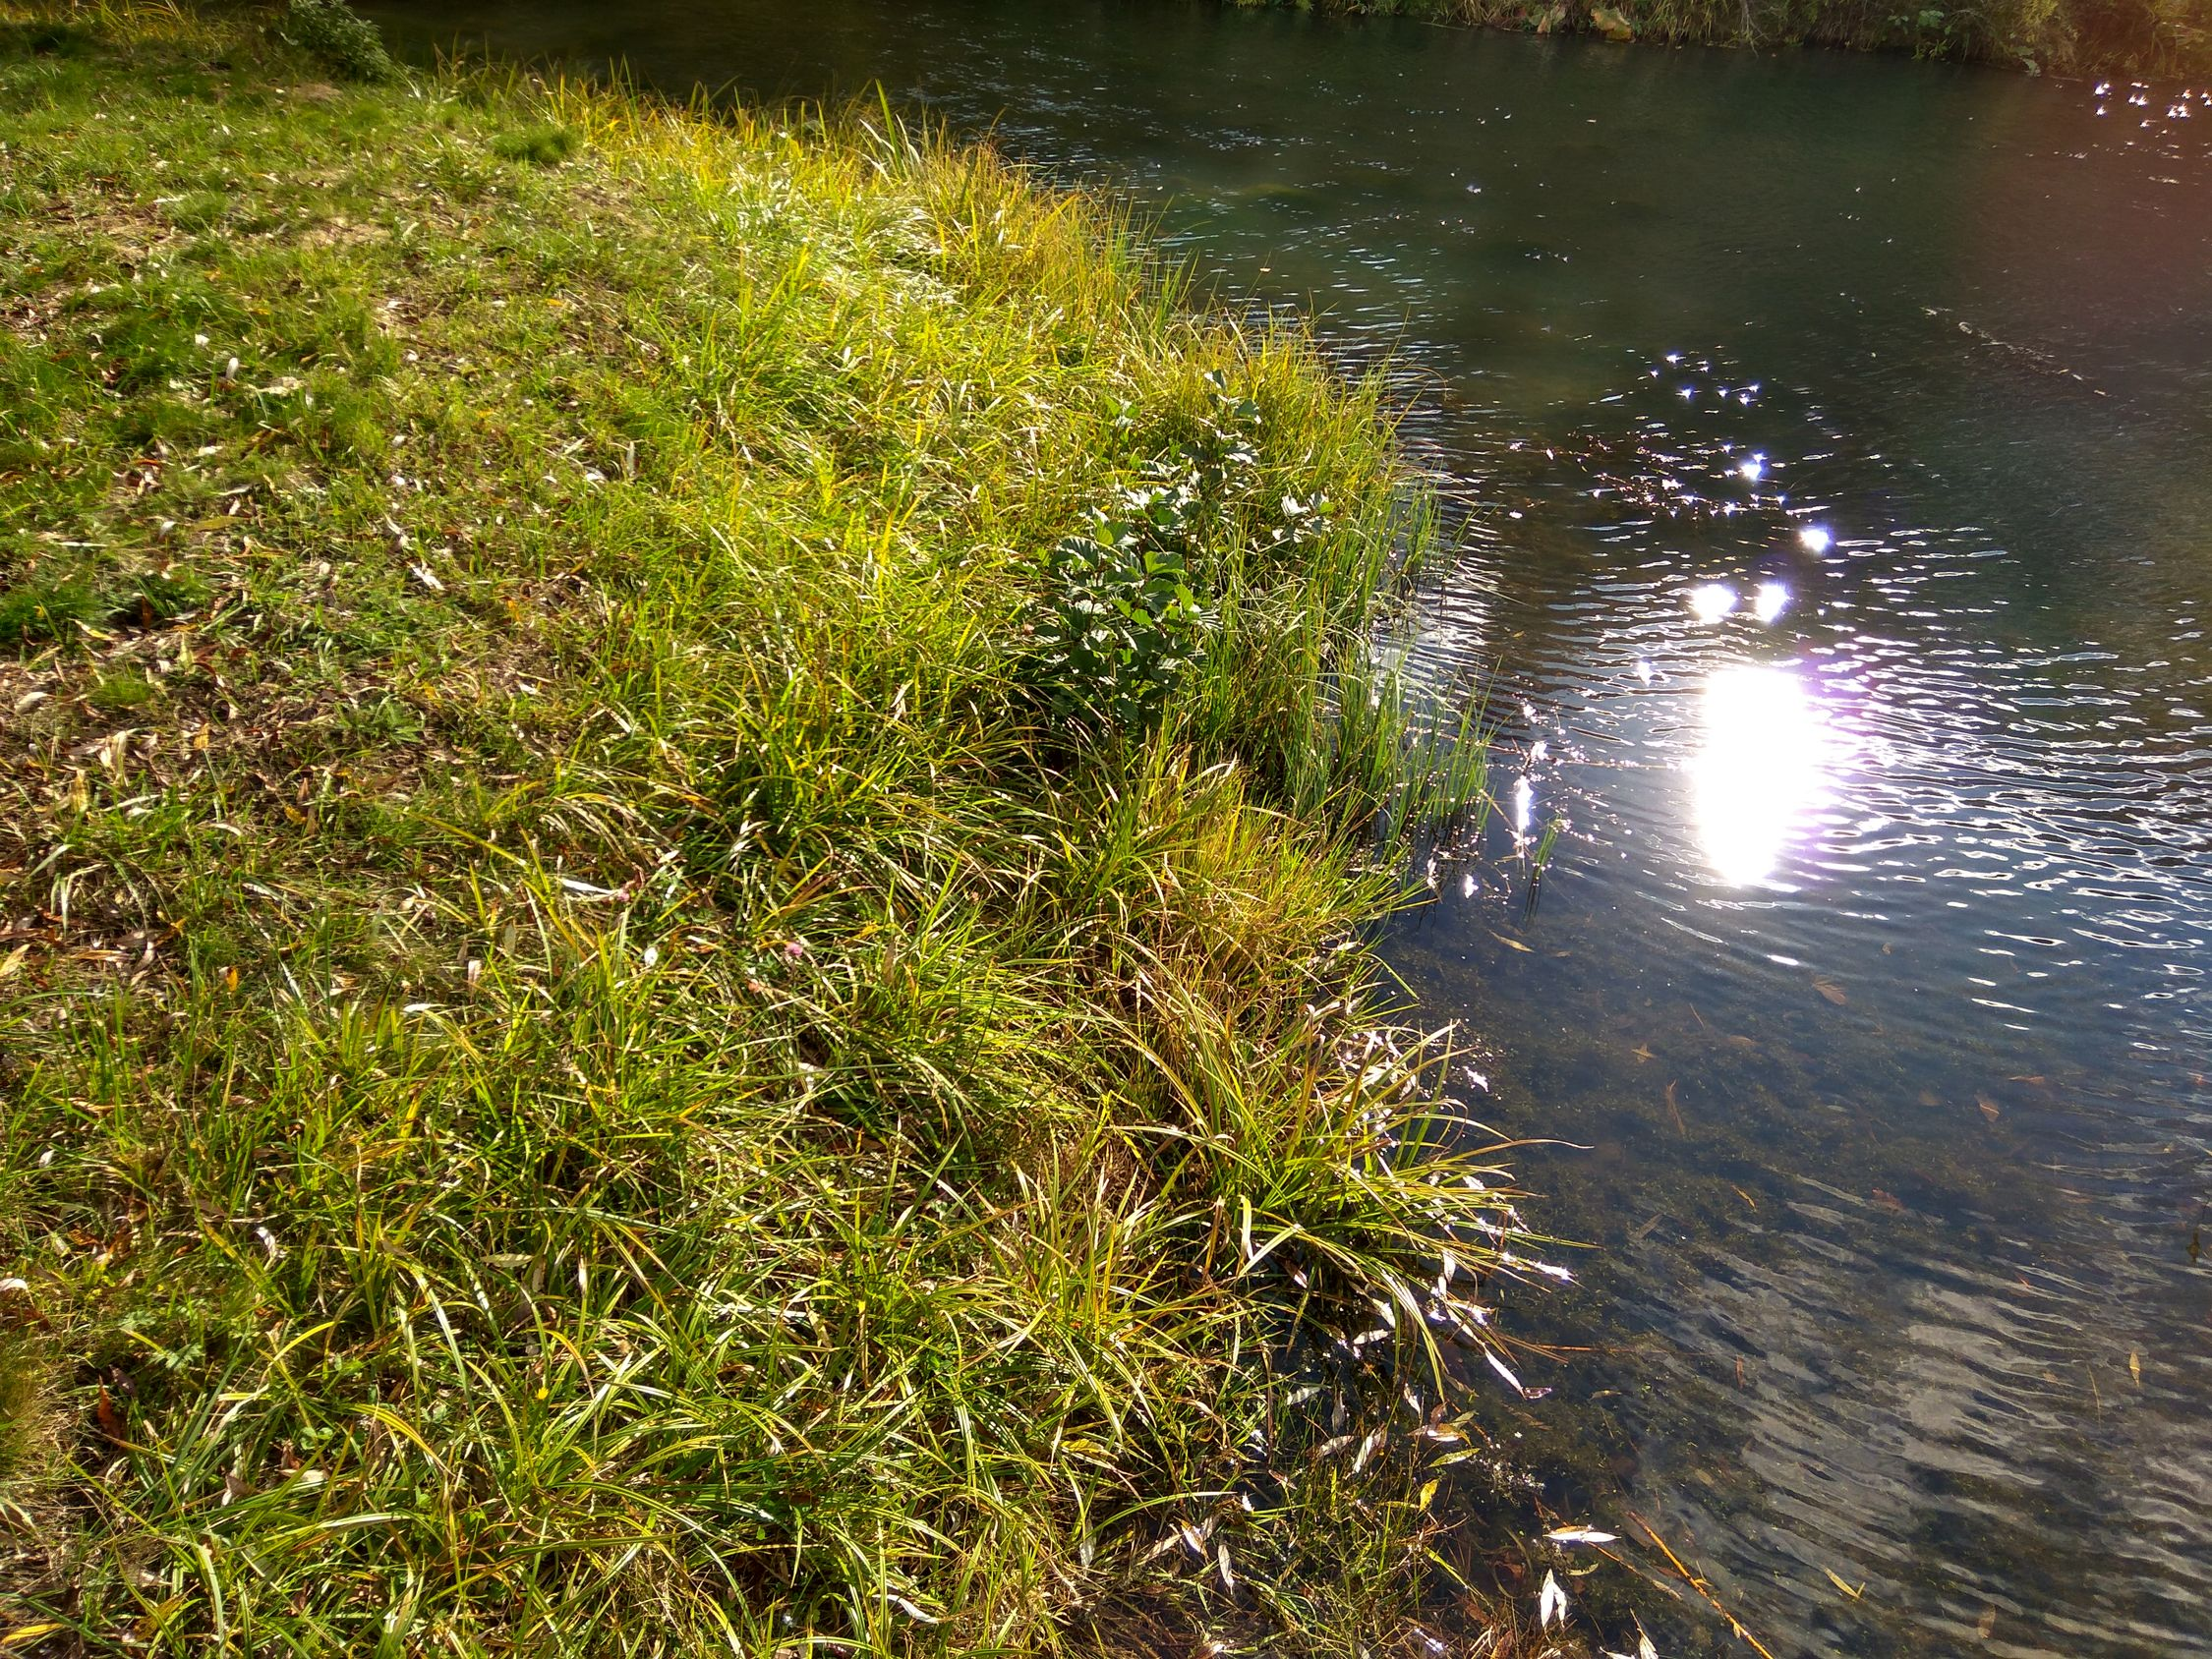 Травушка-муравушка Grass Green Color Sunlight Nature Beauty In Nature Water Reflection Tranquility Scenics Tranquil Scene Full Frame Fragility Moss Plant Green Day Non-urban Scene Freshness Growing